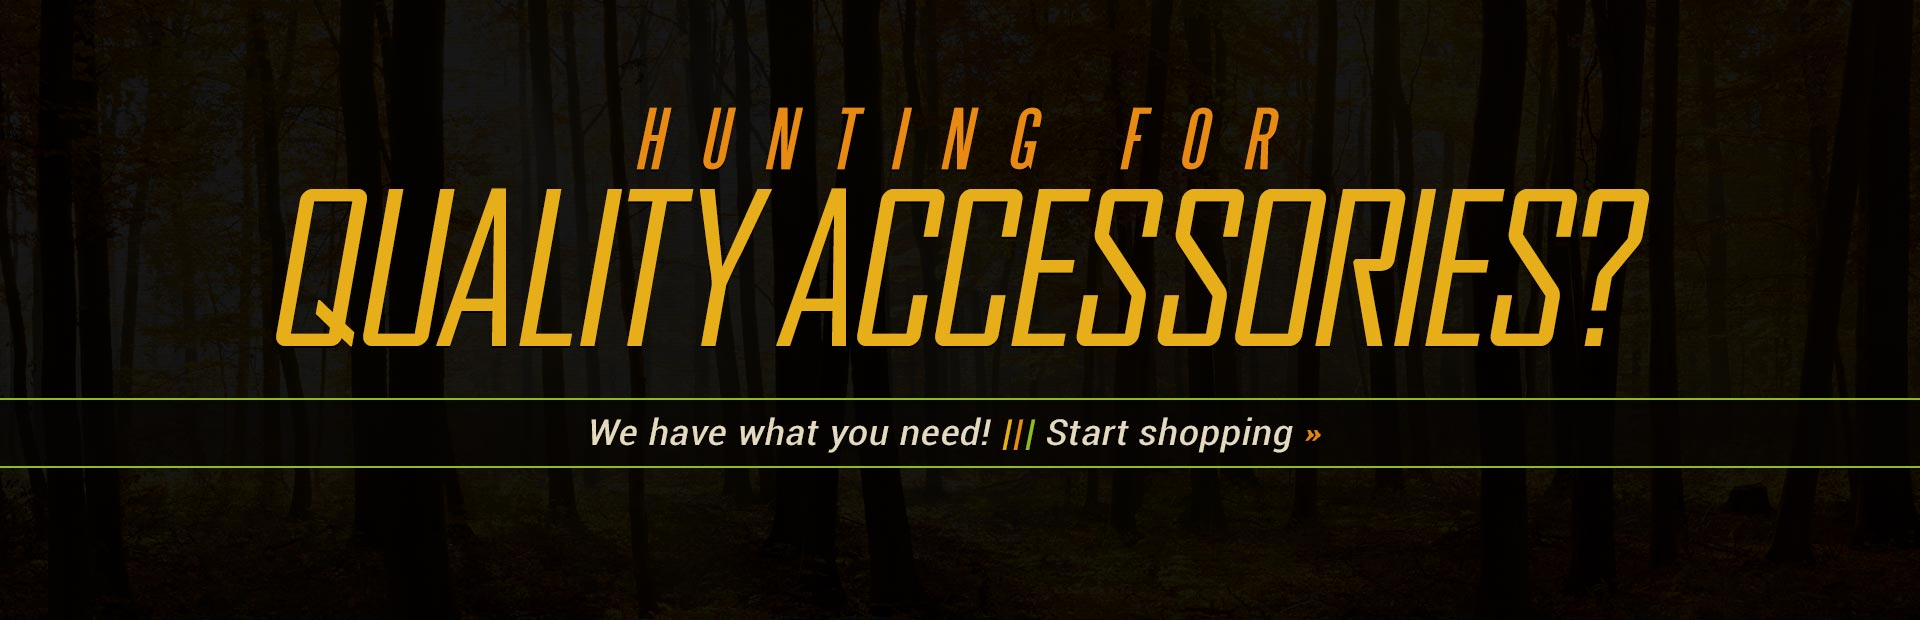 Hunting for quality accessories? We have what you need! Click here to shop online.